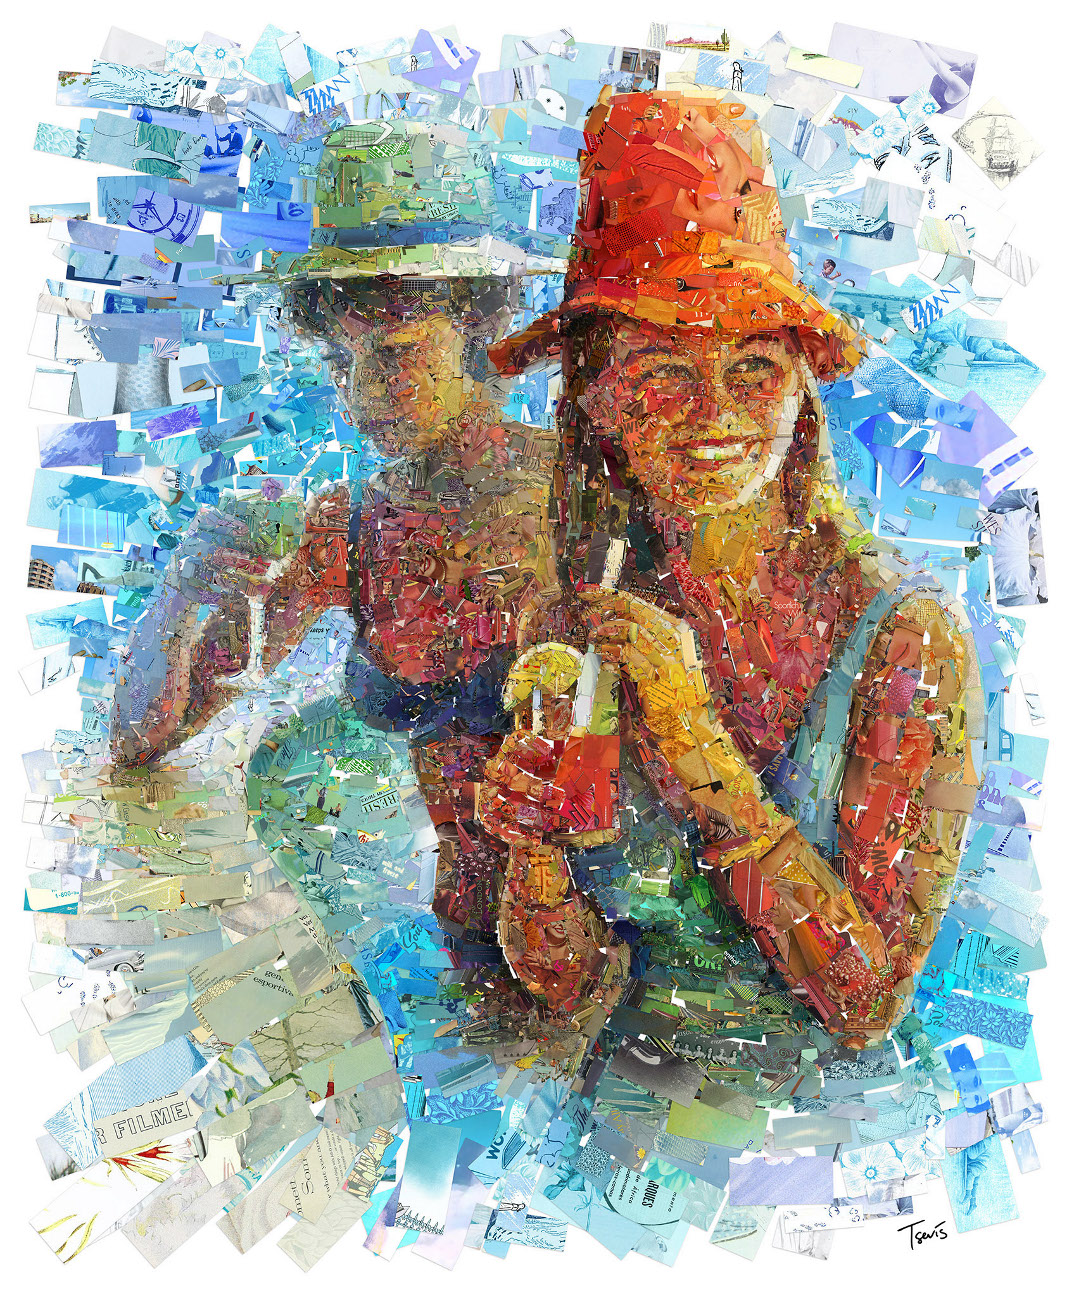 mosaici-collage-riviste-anni-50-60-endless-summer-charis-tsevis-08